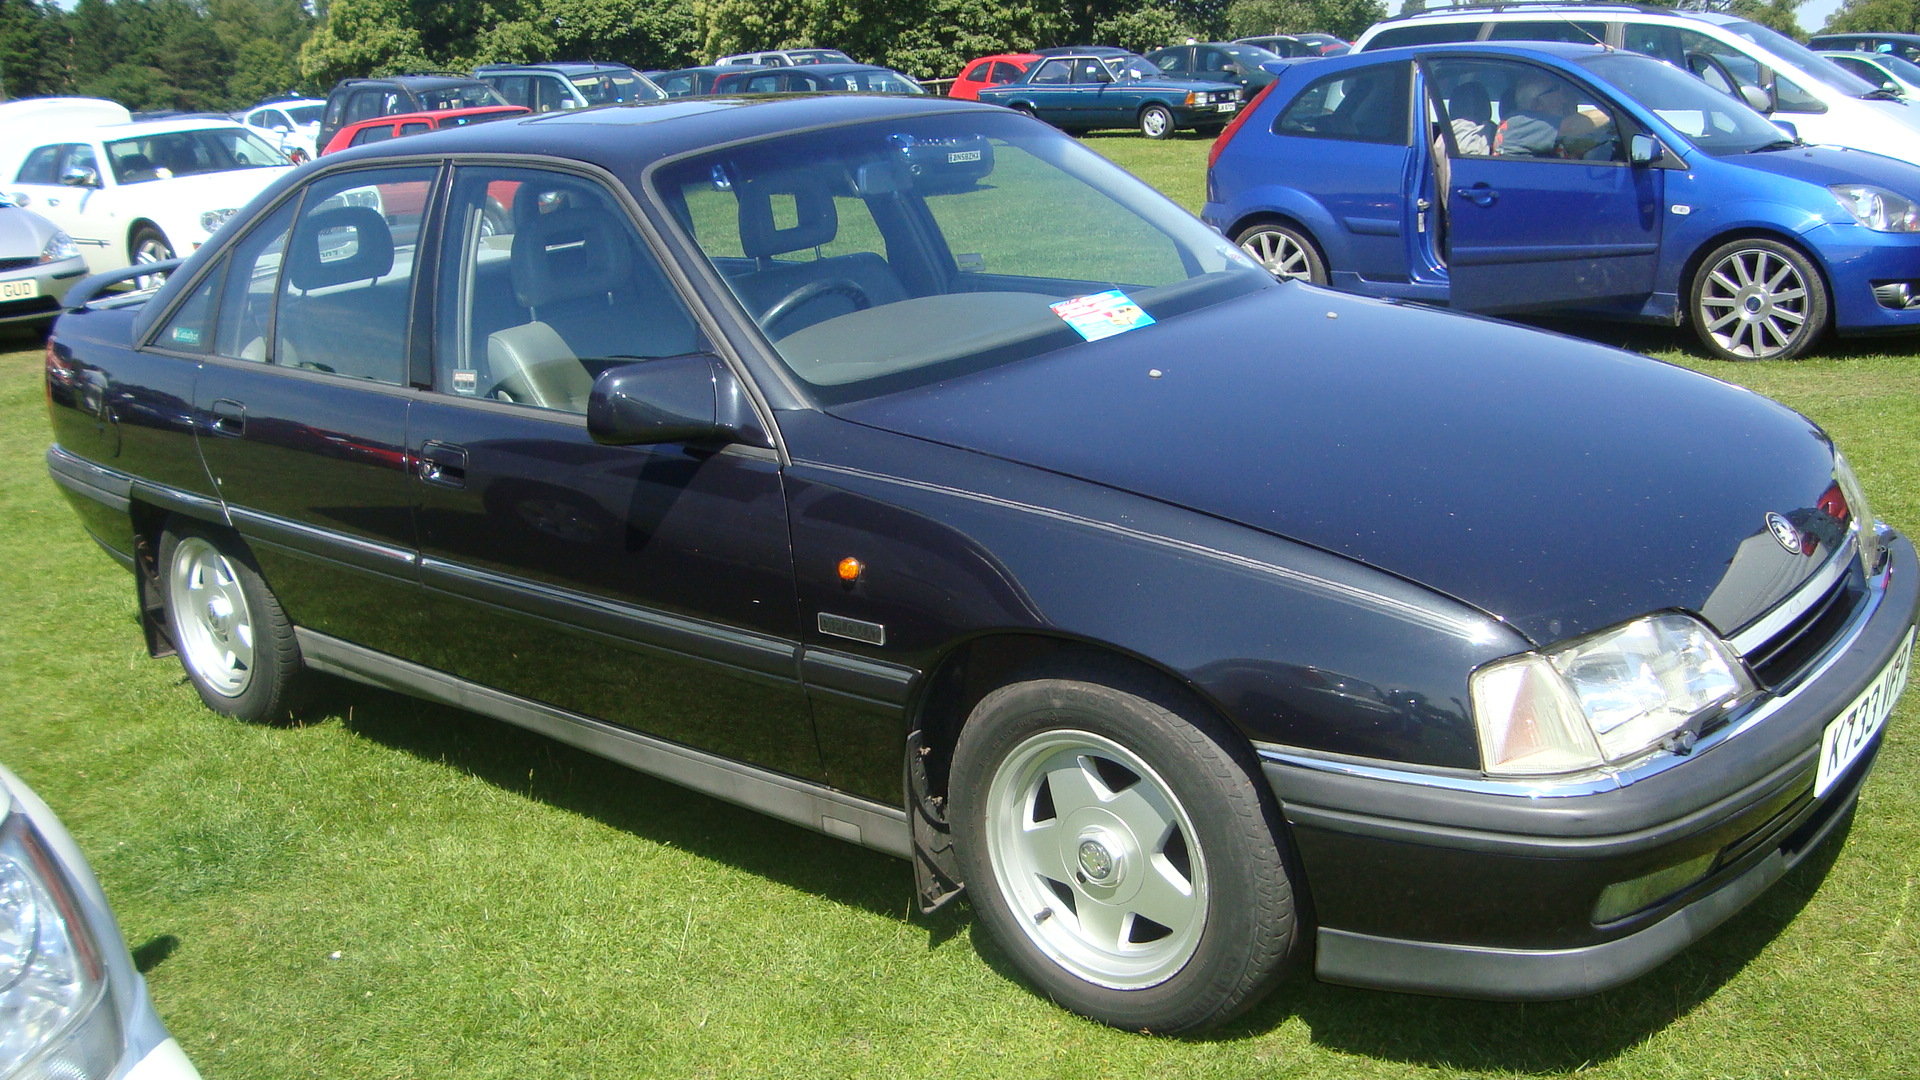 vauxhall lotus carlton wiki vauxhall carlton lotus. Black Bedroom Furniture Sets. Home Design Ideas